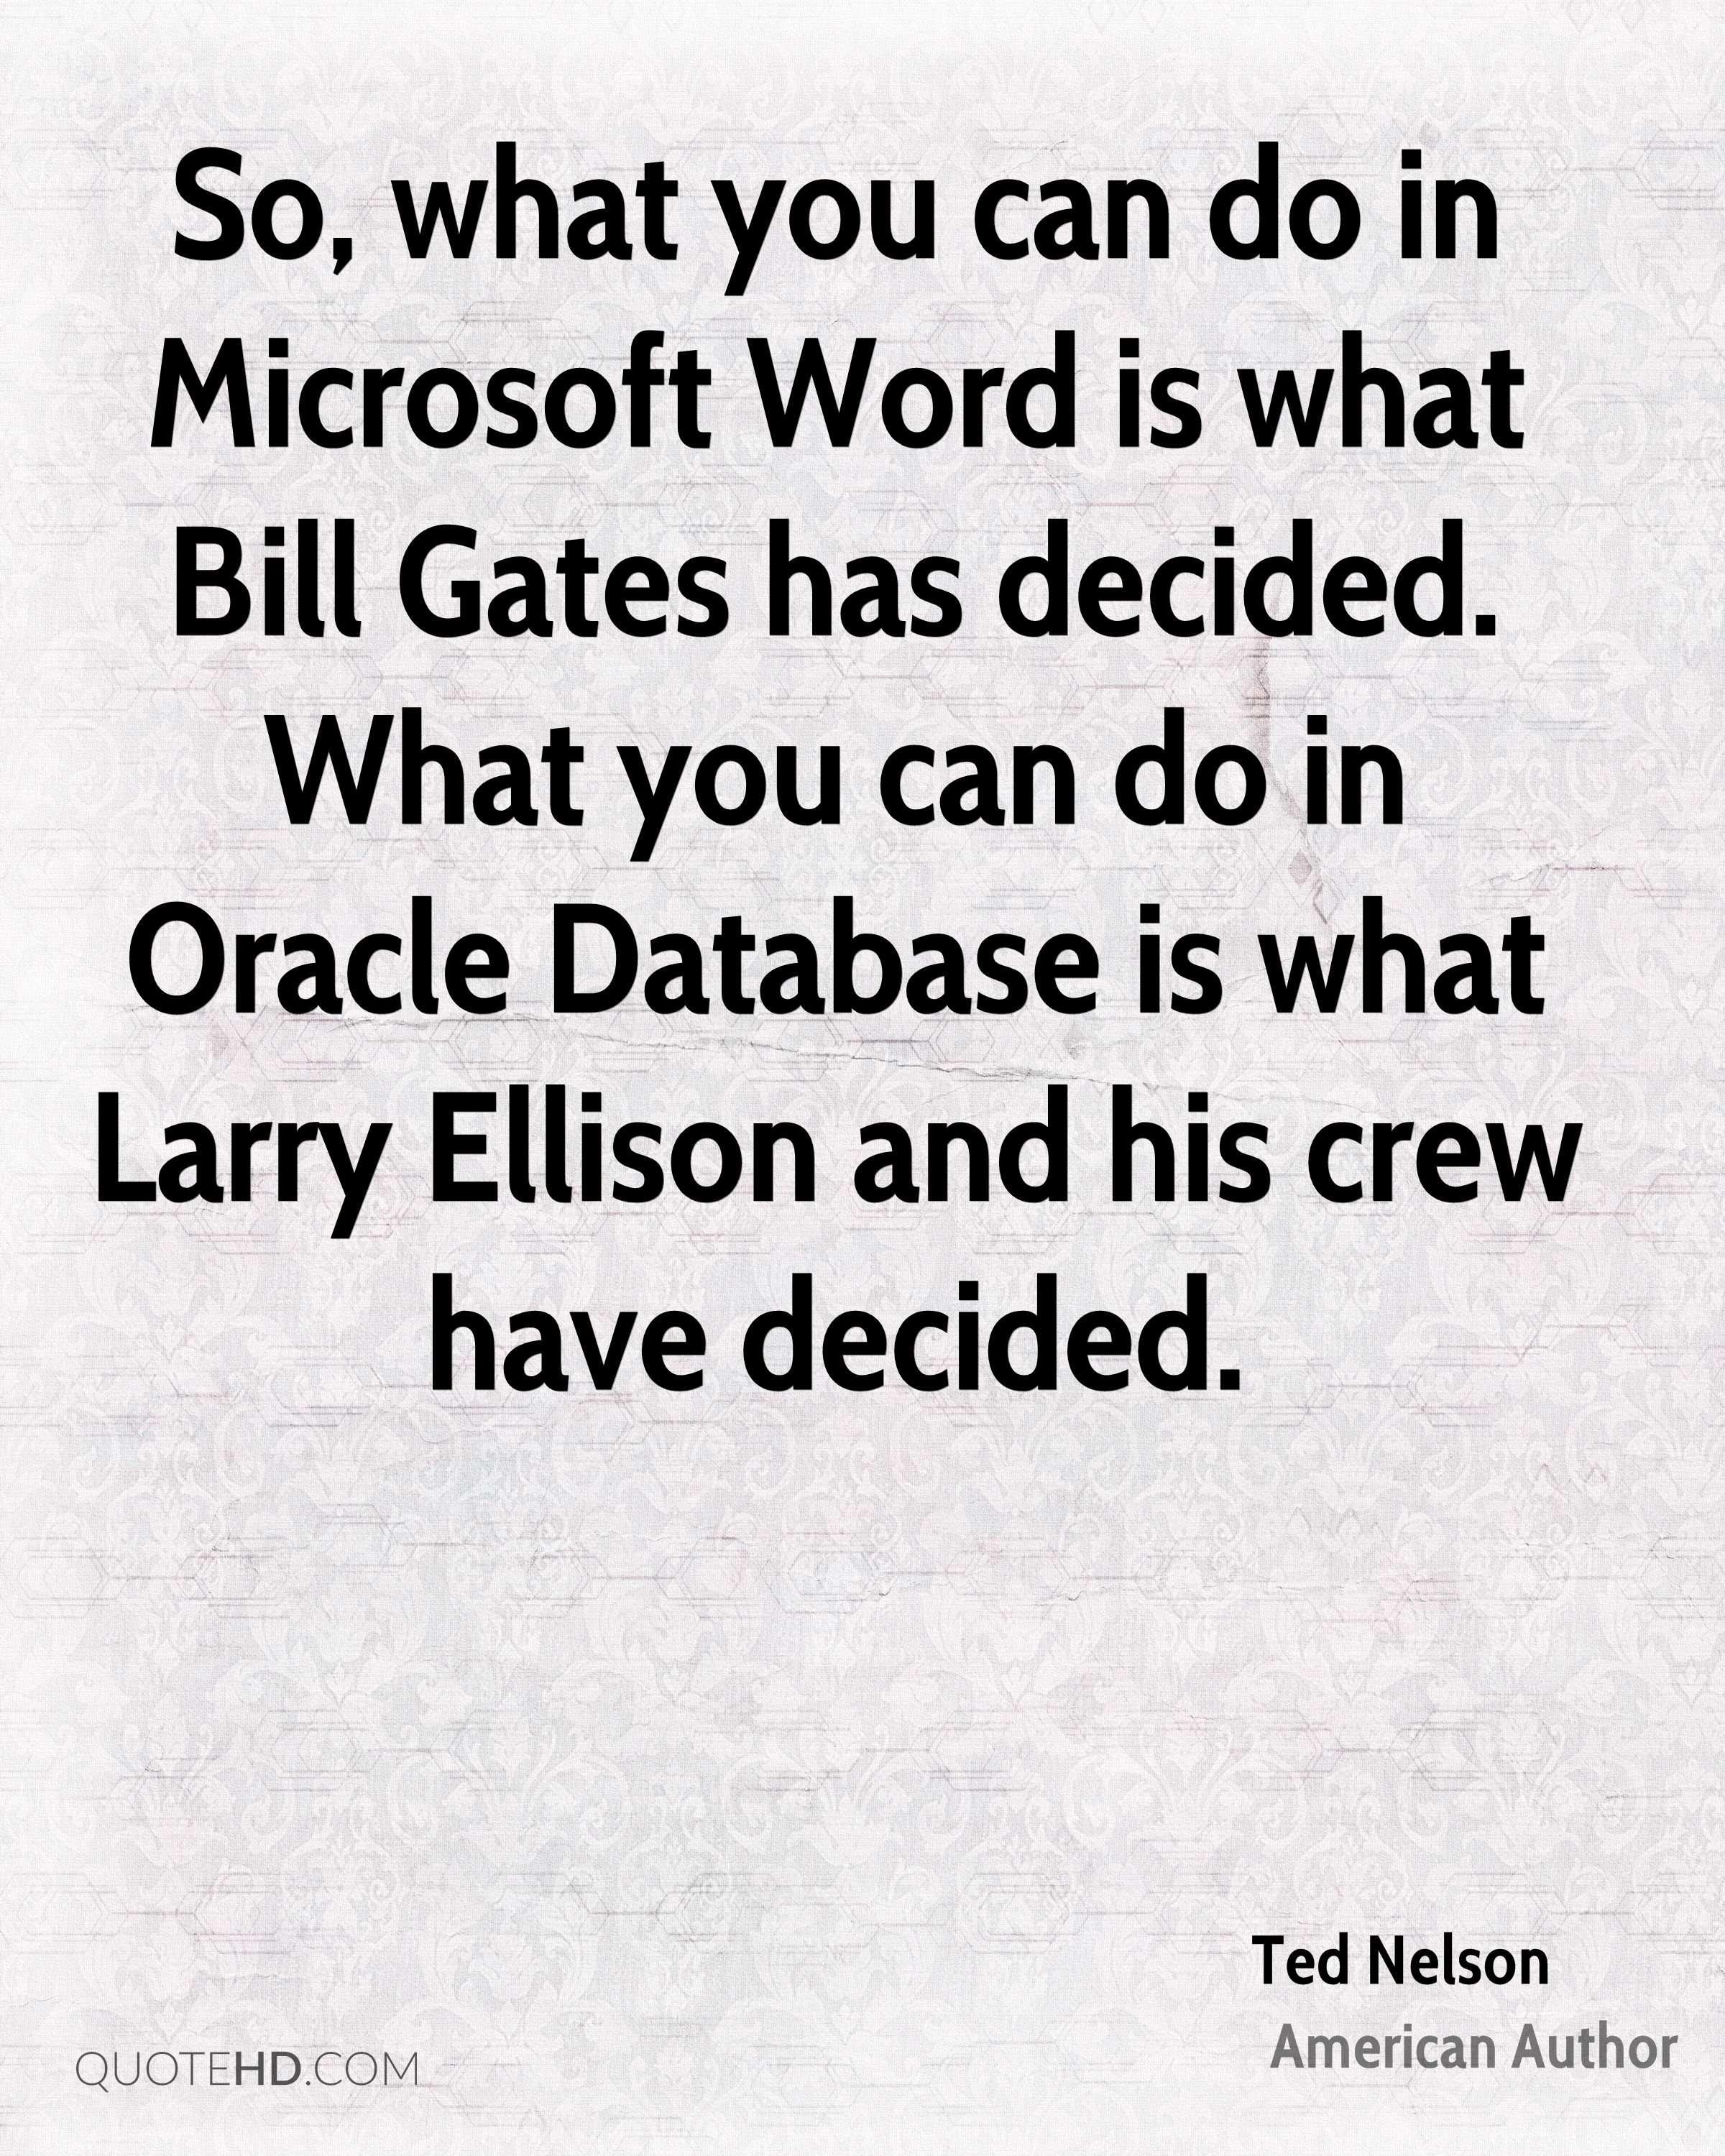 So, what you can do in Microsoft Word is what Bill Gates has decided. What you can do in Oracle Database is what Larry Ellison and his crew have decided.